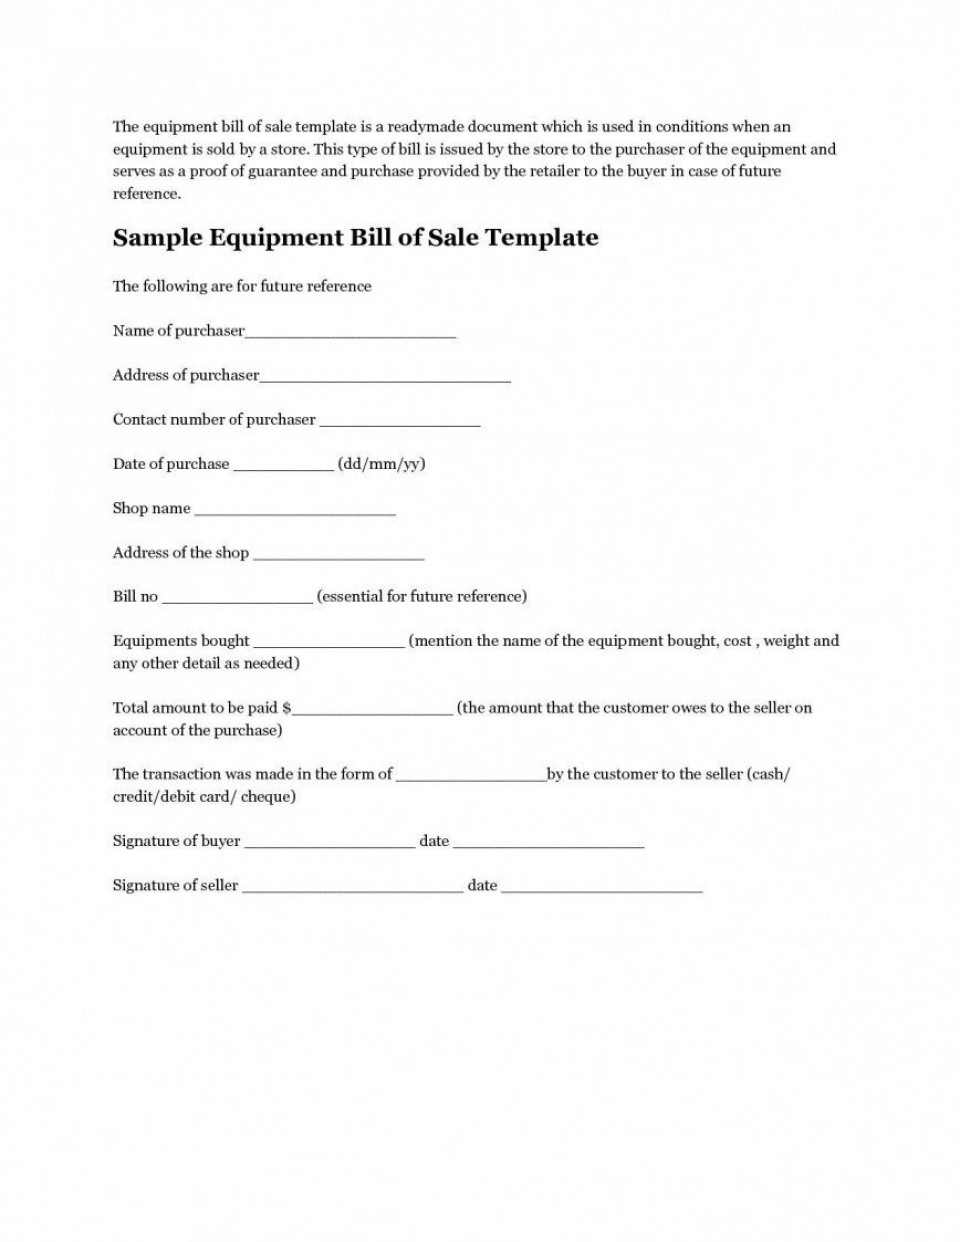 008 Unforgettable Microsoft Word Equipment Bill Of Sale Template Highest Clarity 960